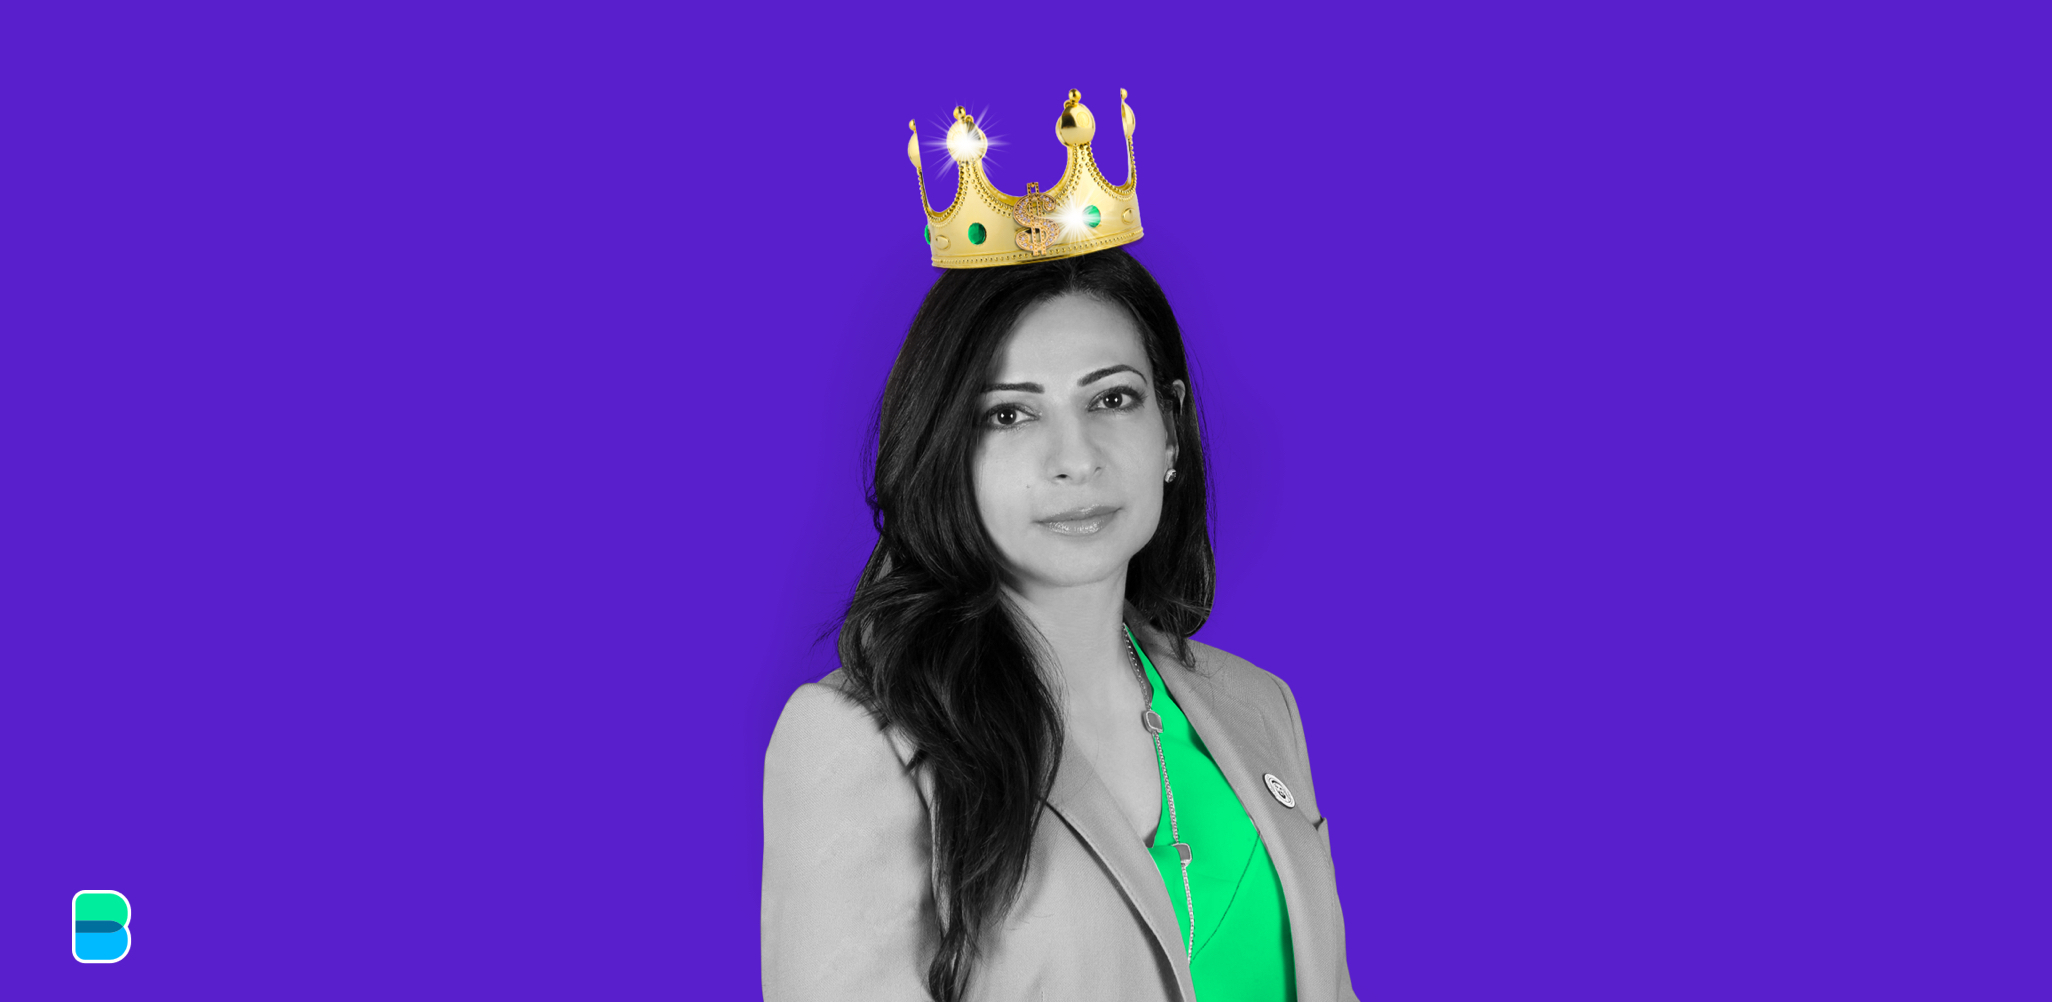 FAB crowns Hana Al Rostamani as queen bee CEO